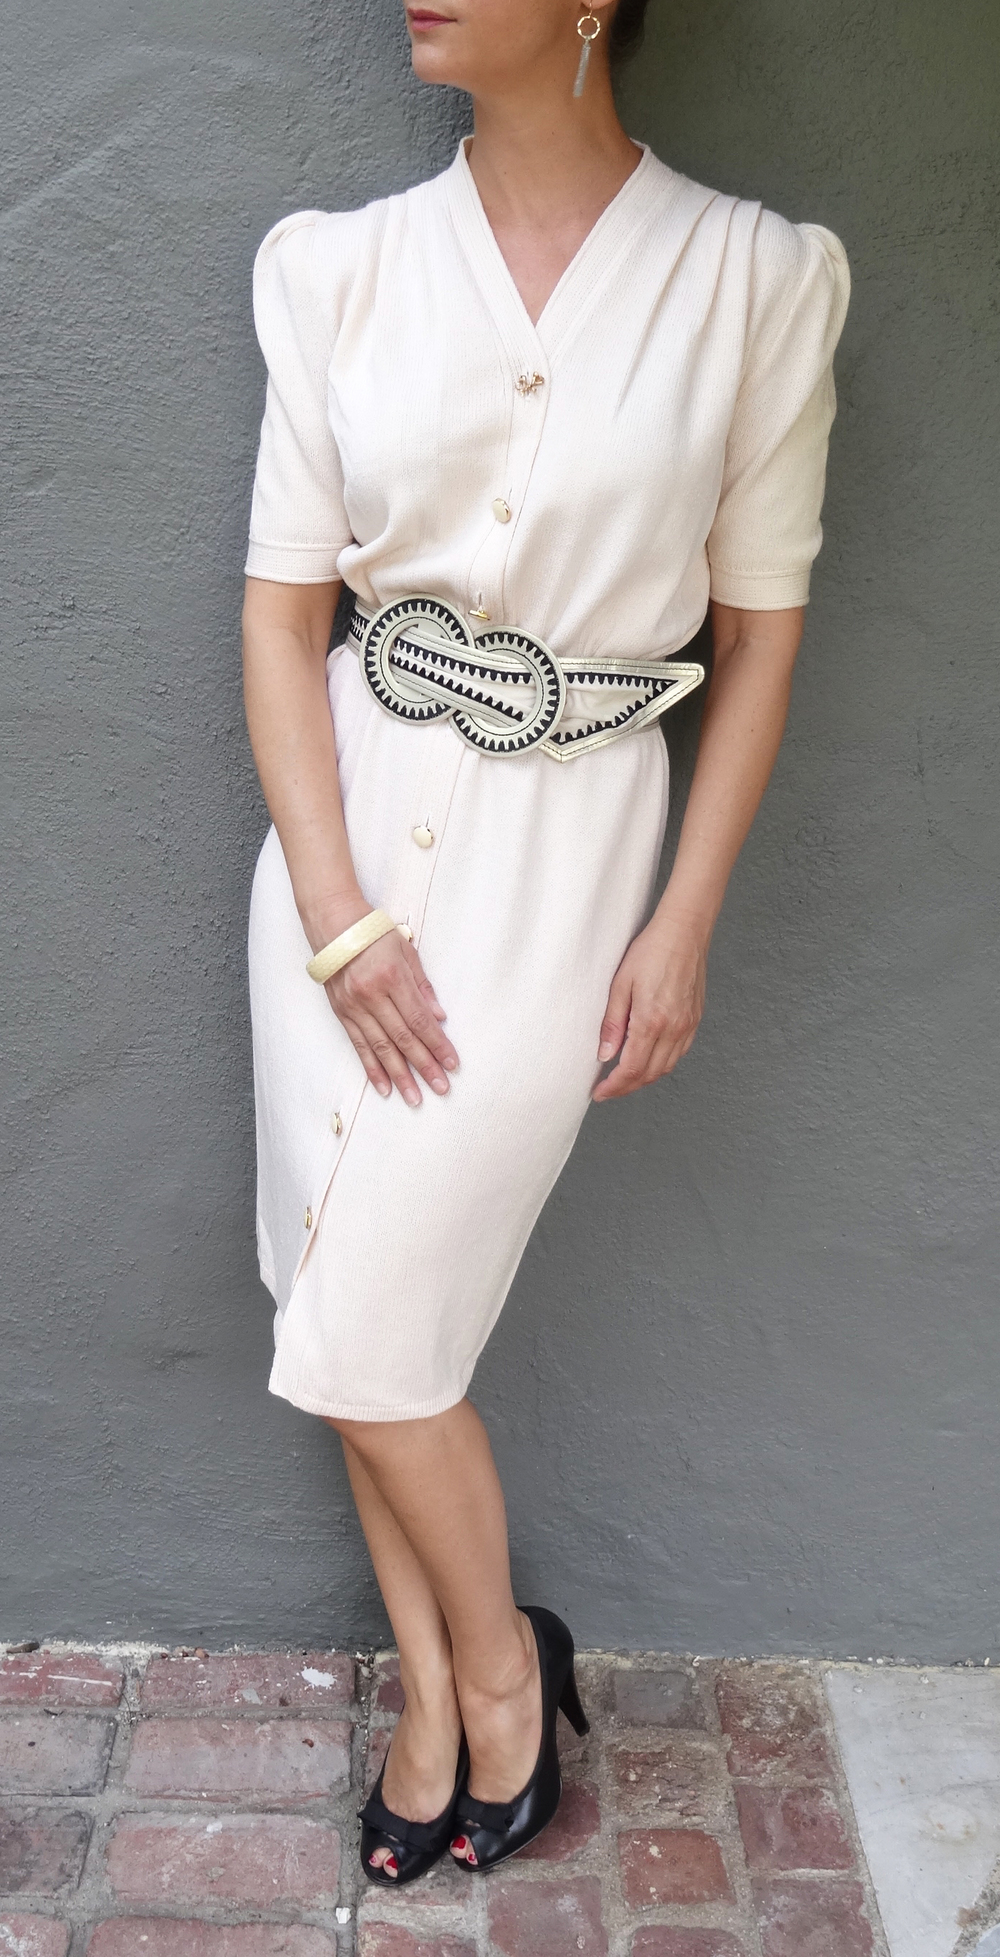 Vintage St. John dress, Marc Jacobs peep toes, Anthropolgie belt